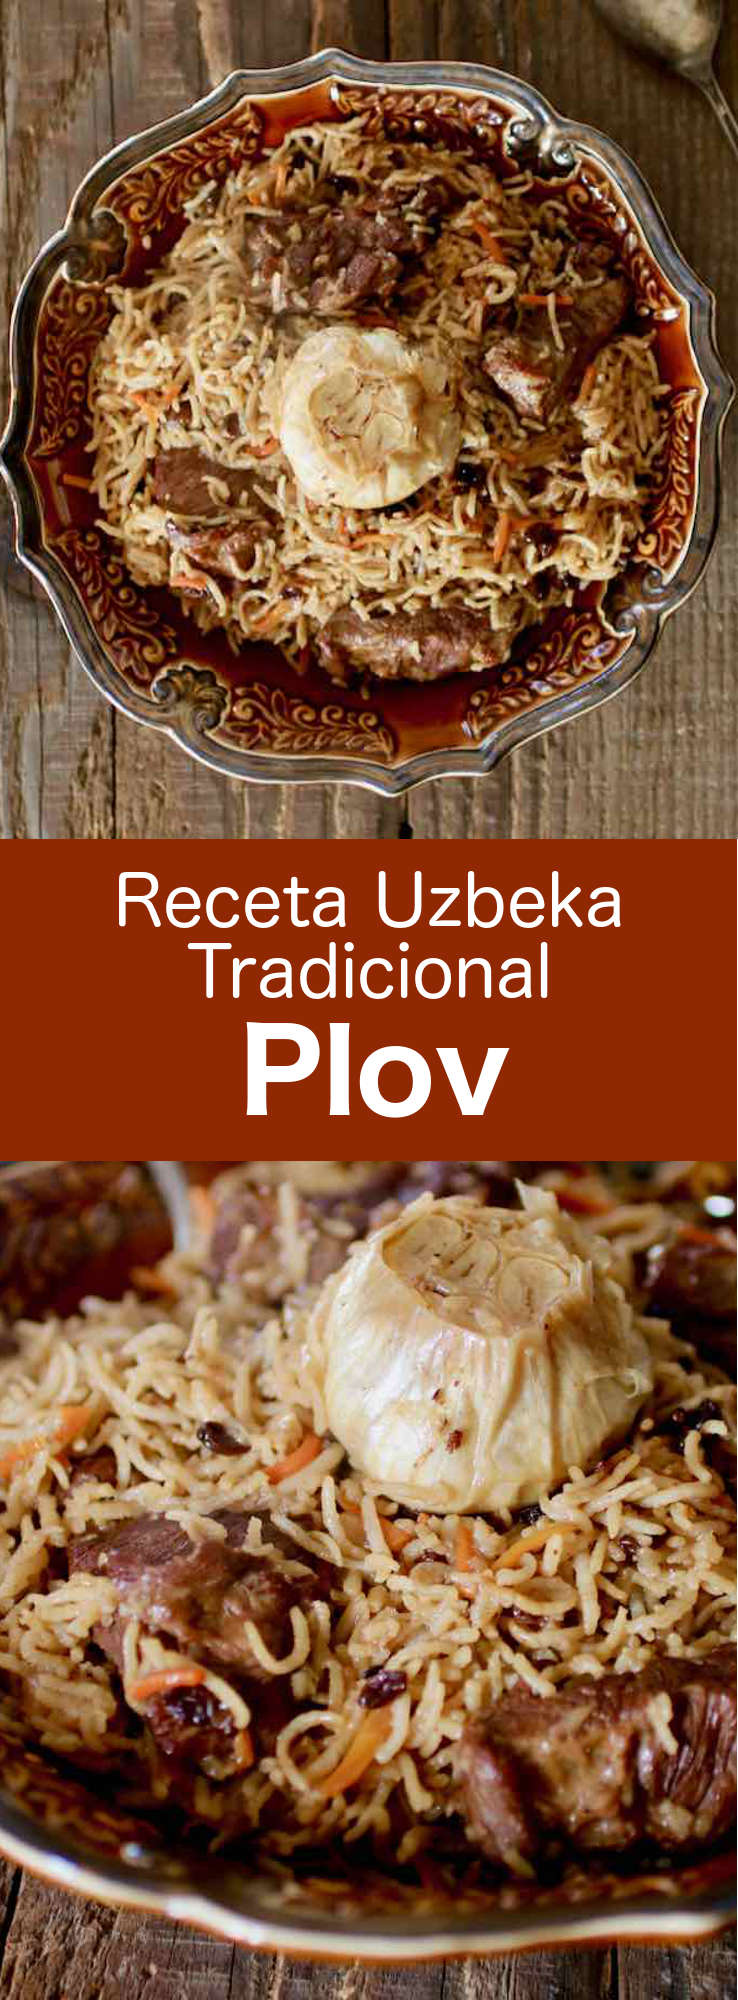 Uzbek plov differs from other preparations in that rice is simmered in a broth of meat and vegetables called zirvak until the liquid evaporates. #Uzbek #UzbekCuisine #UzbekFood #UzbekRecipe #WorldCuisine #196flavors